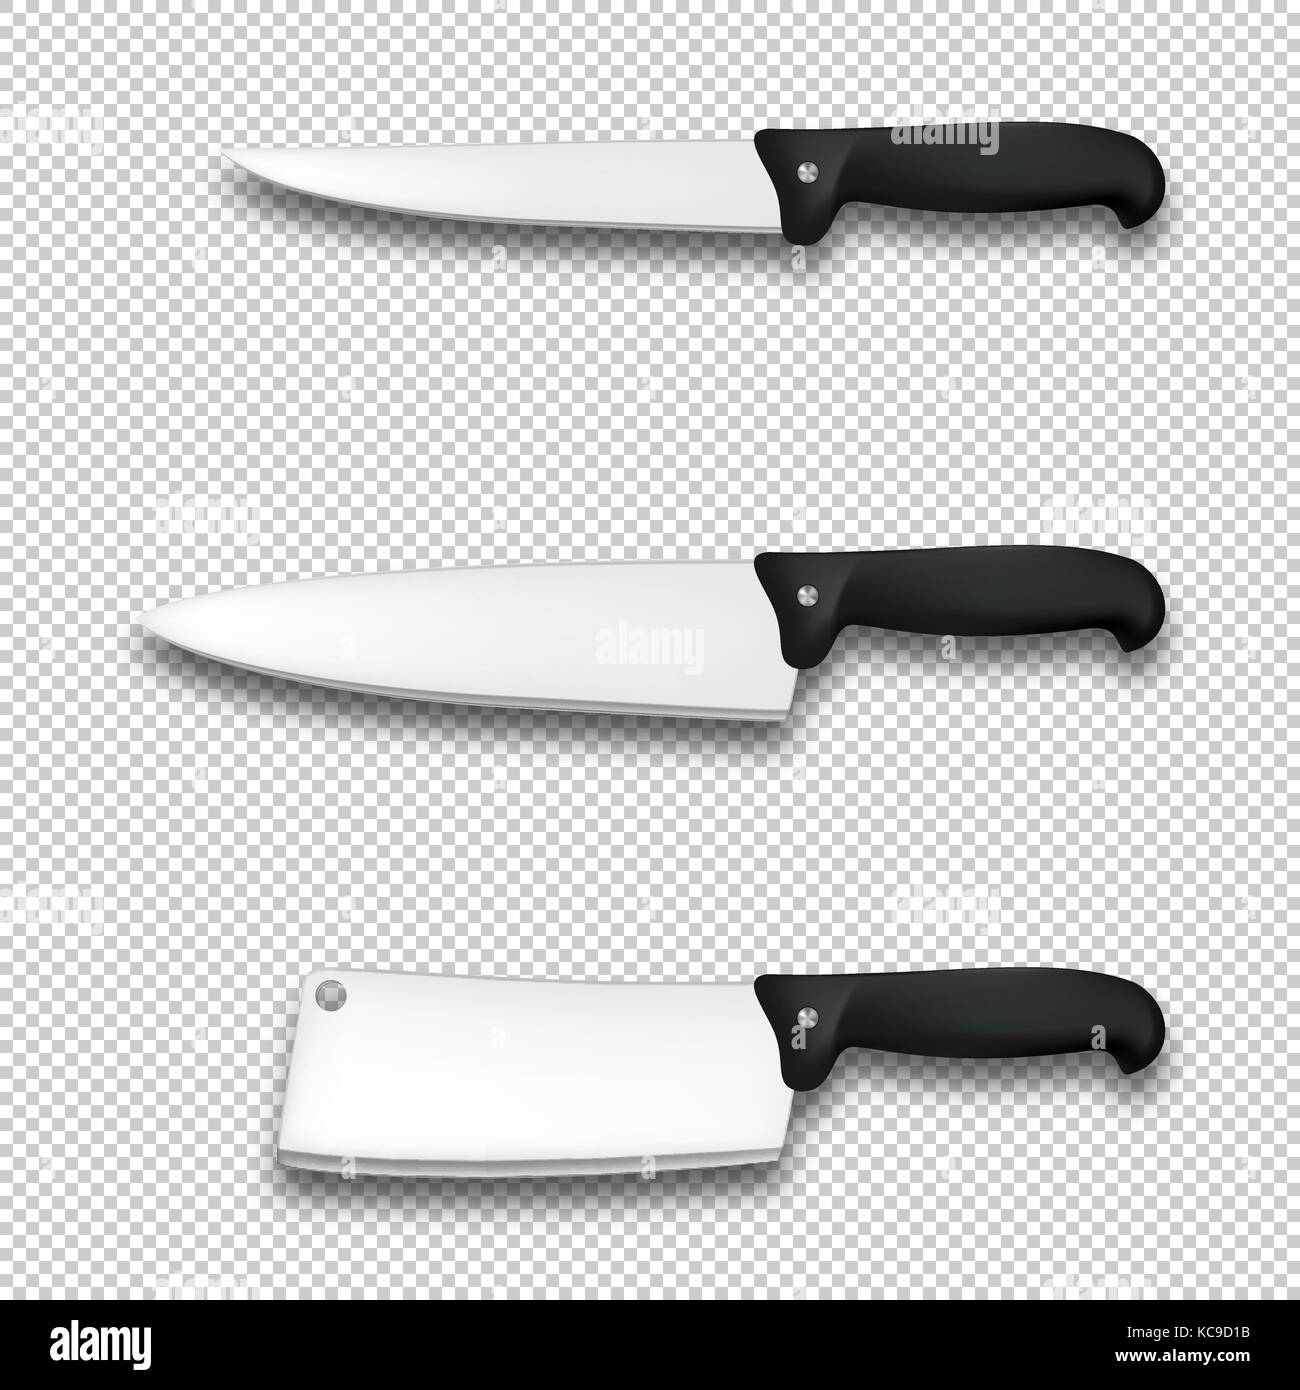 Cutlery icon set - vector realistic diffrent kitchen knives closeup isolated on transparent background. Design template - Stock Image